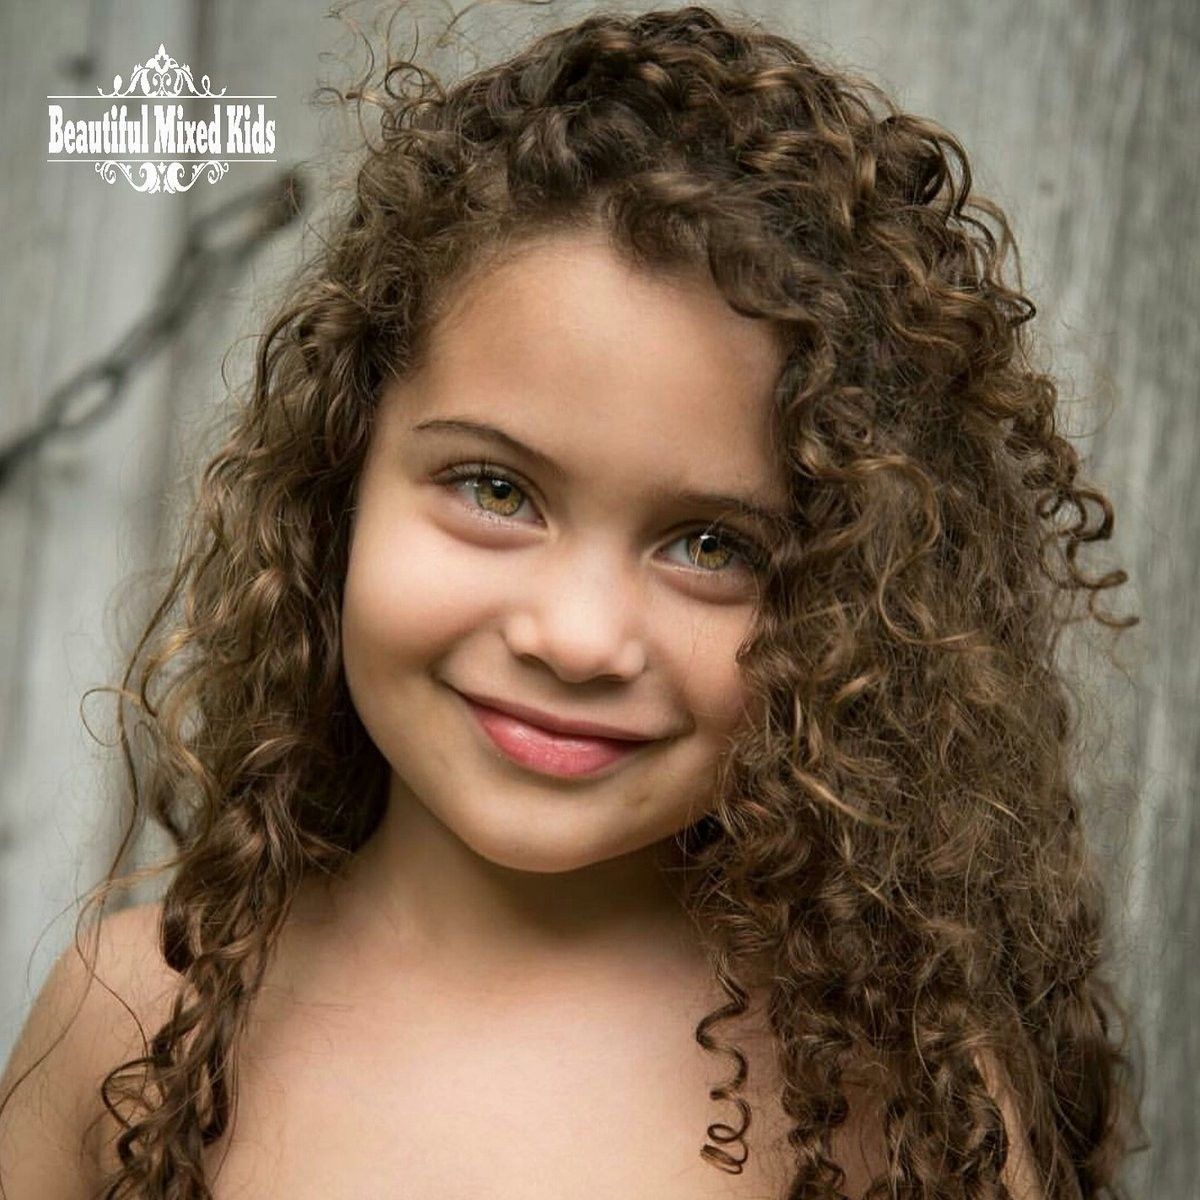 Pin By Katie Seale On Inspiration Kids Hairstyles Curly Hair Styles Beautiful Little Girls